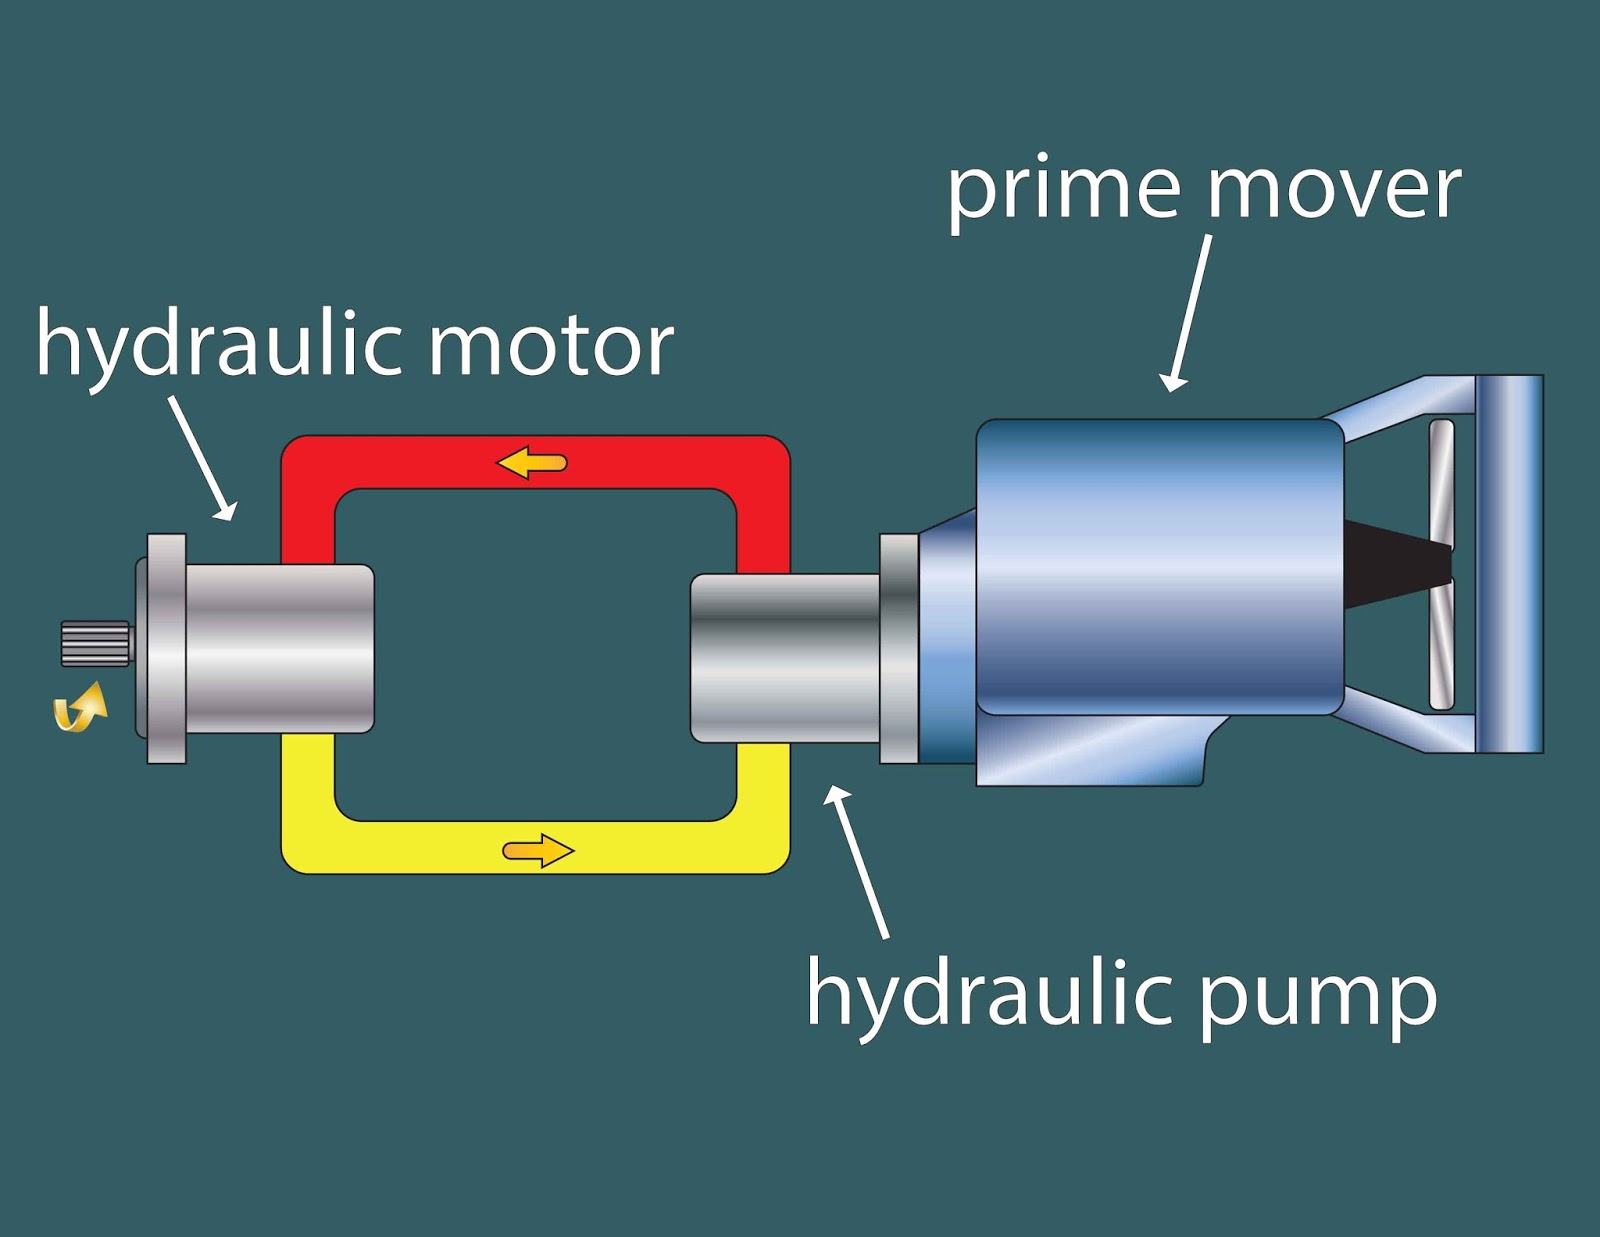 flint hydraulics  inc   prime movers in hydraulic systems